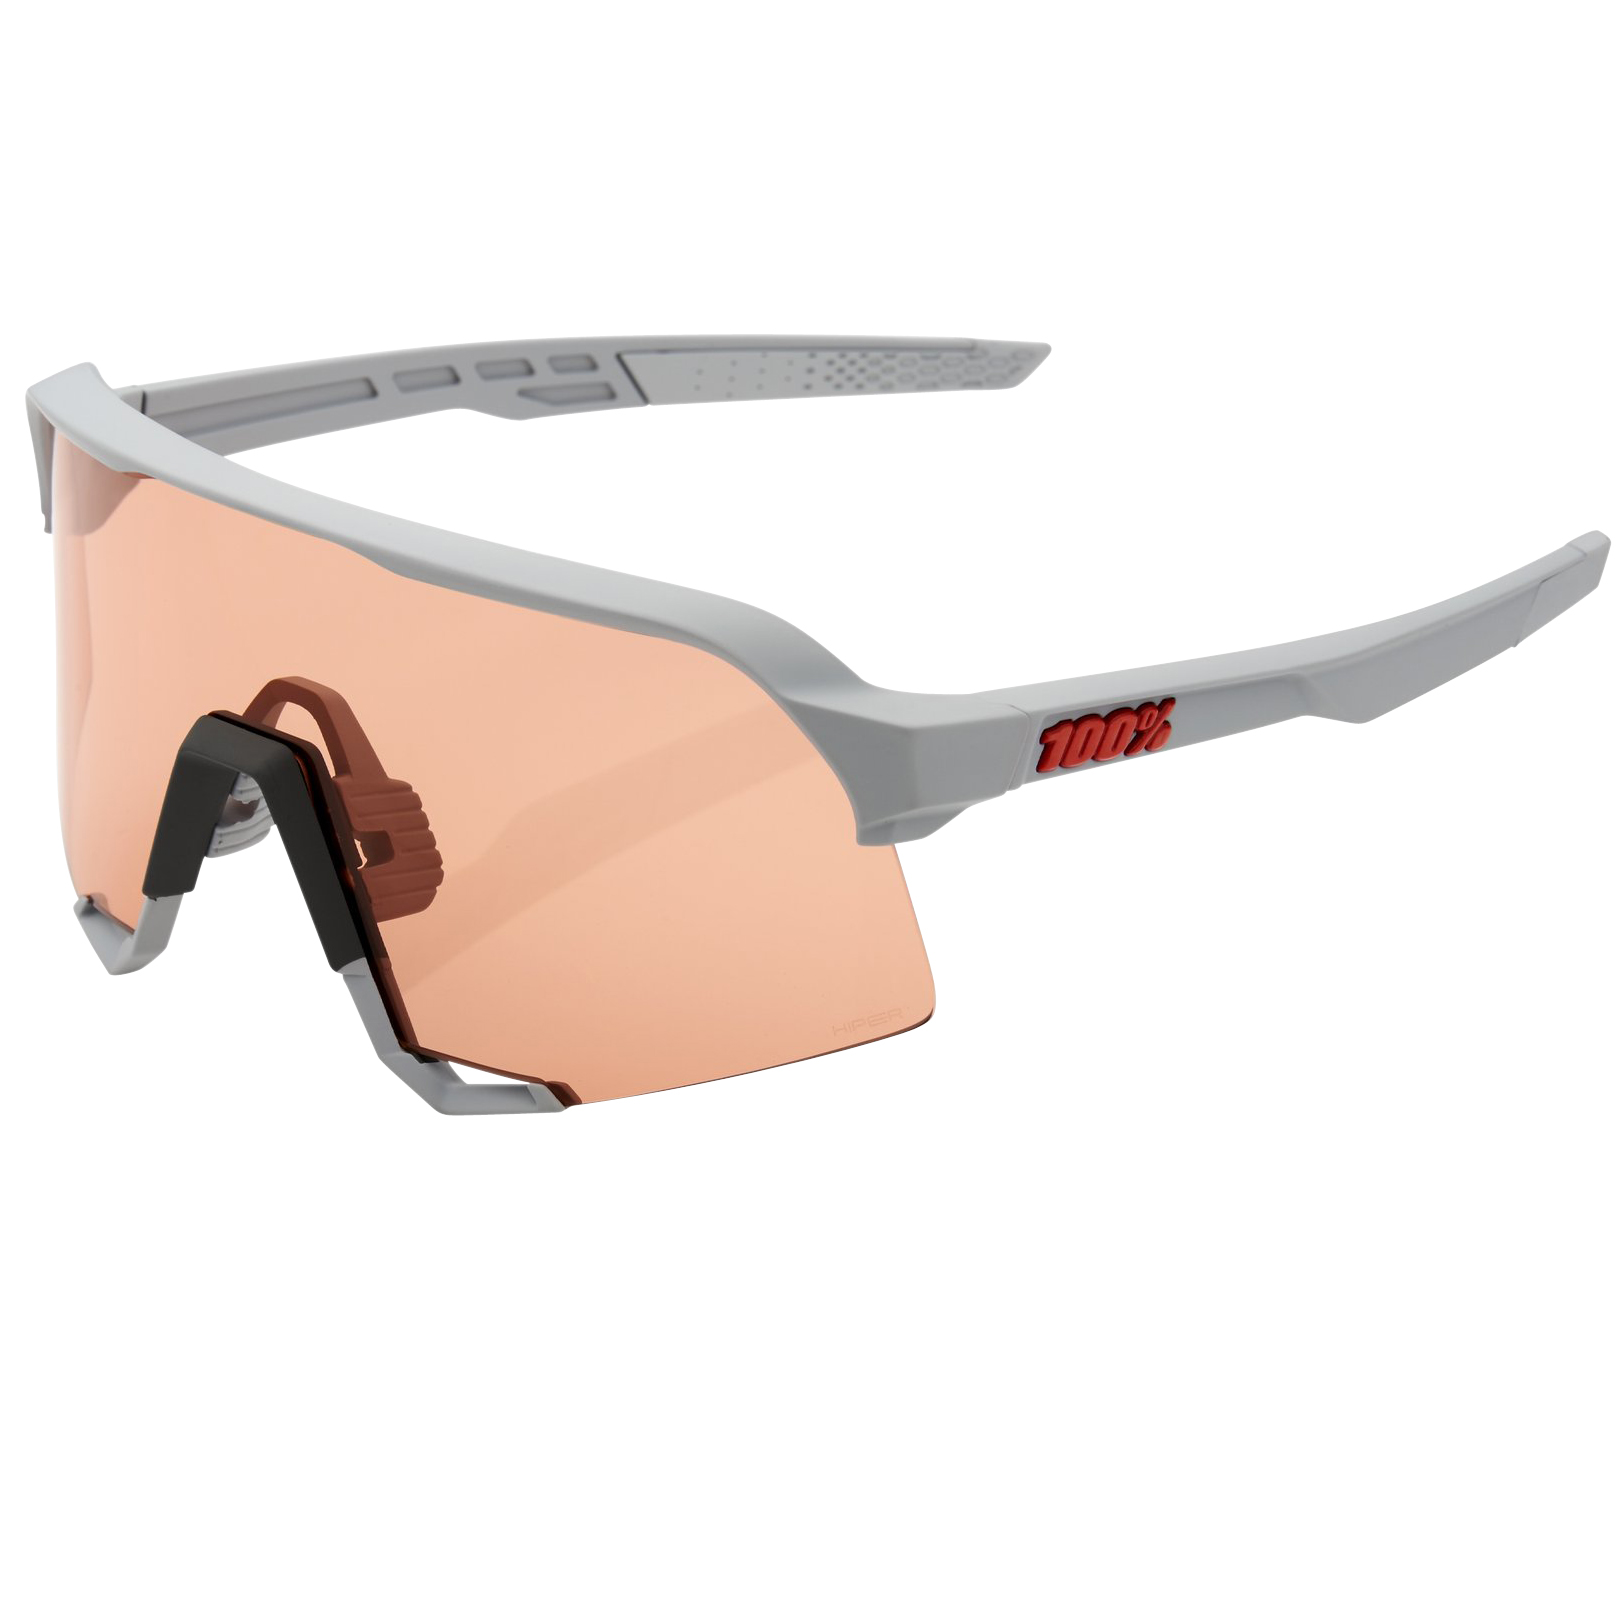 100% S3 HiPER Mirror Glasses - Soft Tact Stone Grey/Coral + Clear